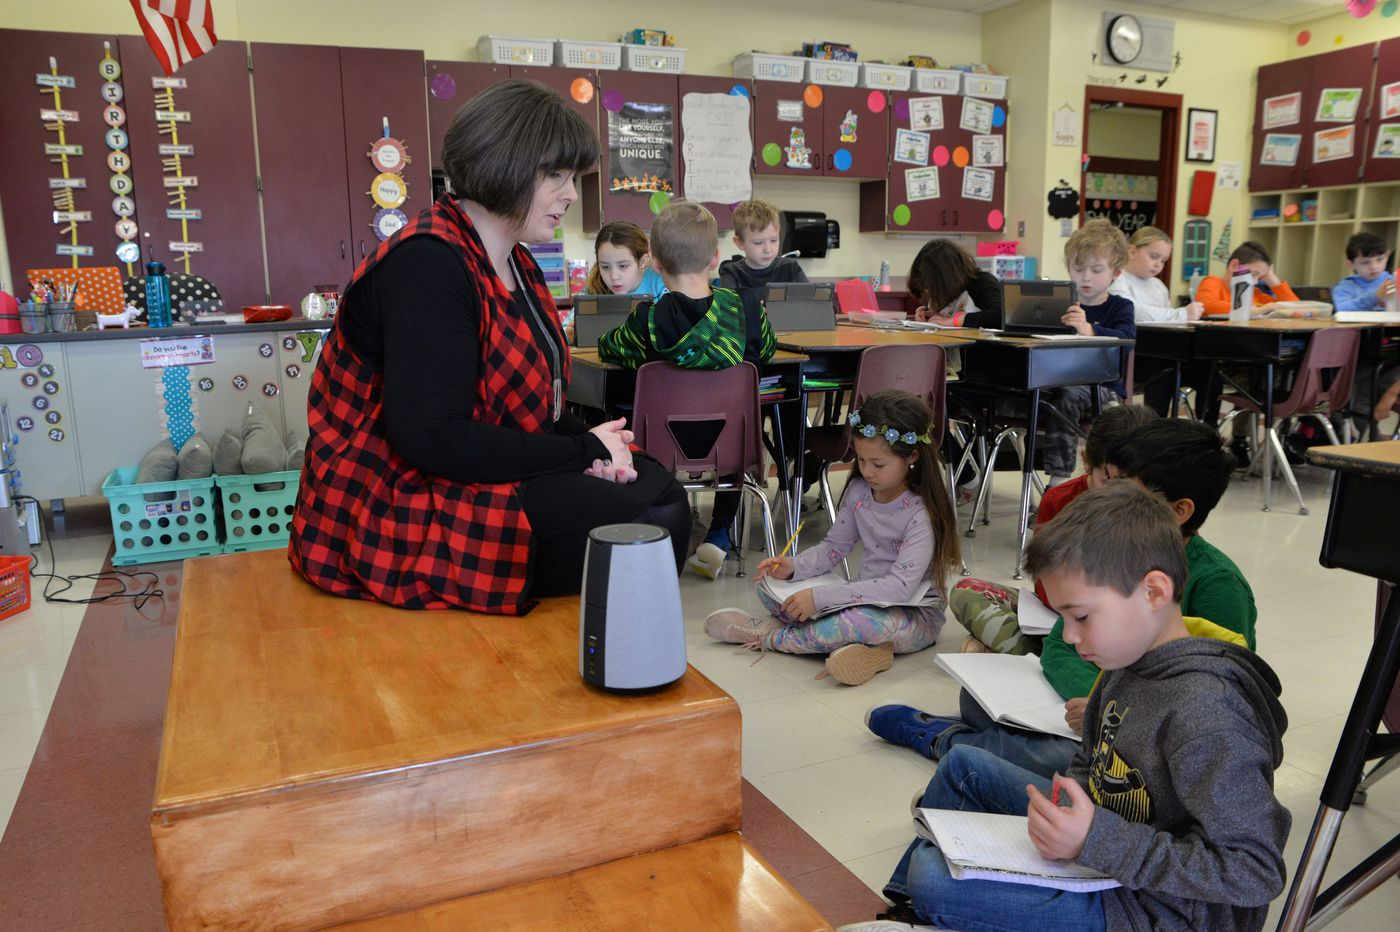 Alexa, can you help kids learn and teachers manage a classroom? At Garnet Valley, the answer is: 'Yes'